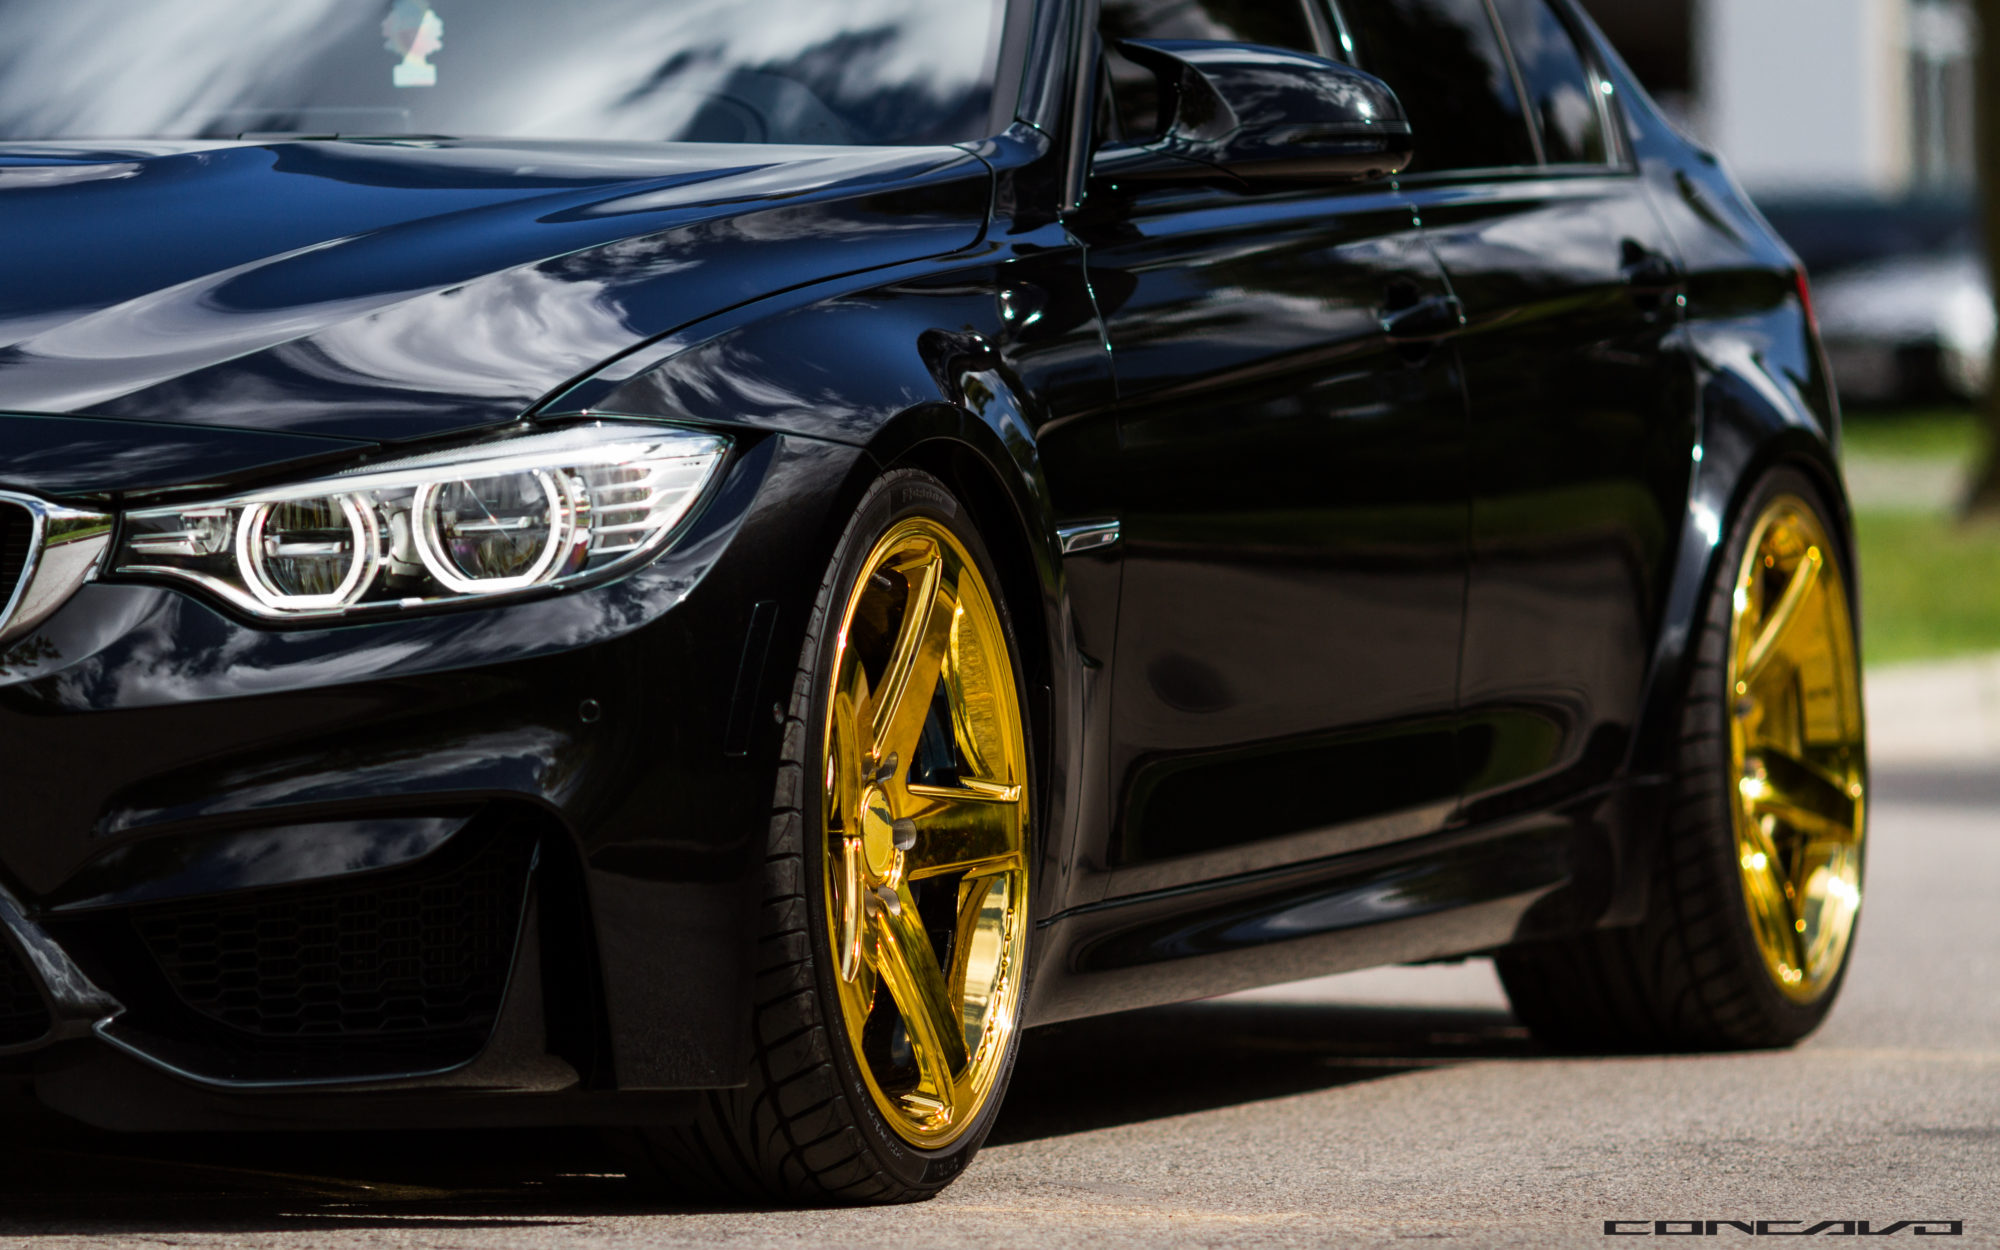 Bmw M3 On 20 Dubai Gold Cw 5 Concavo Wheels